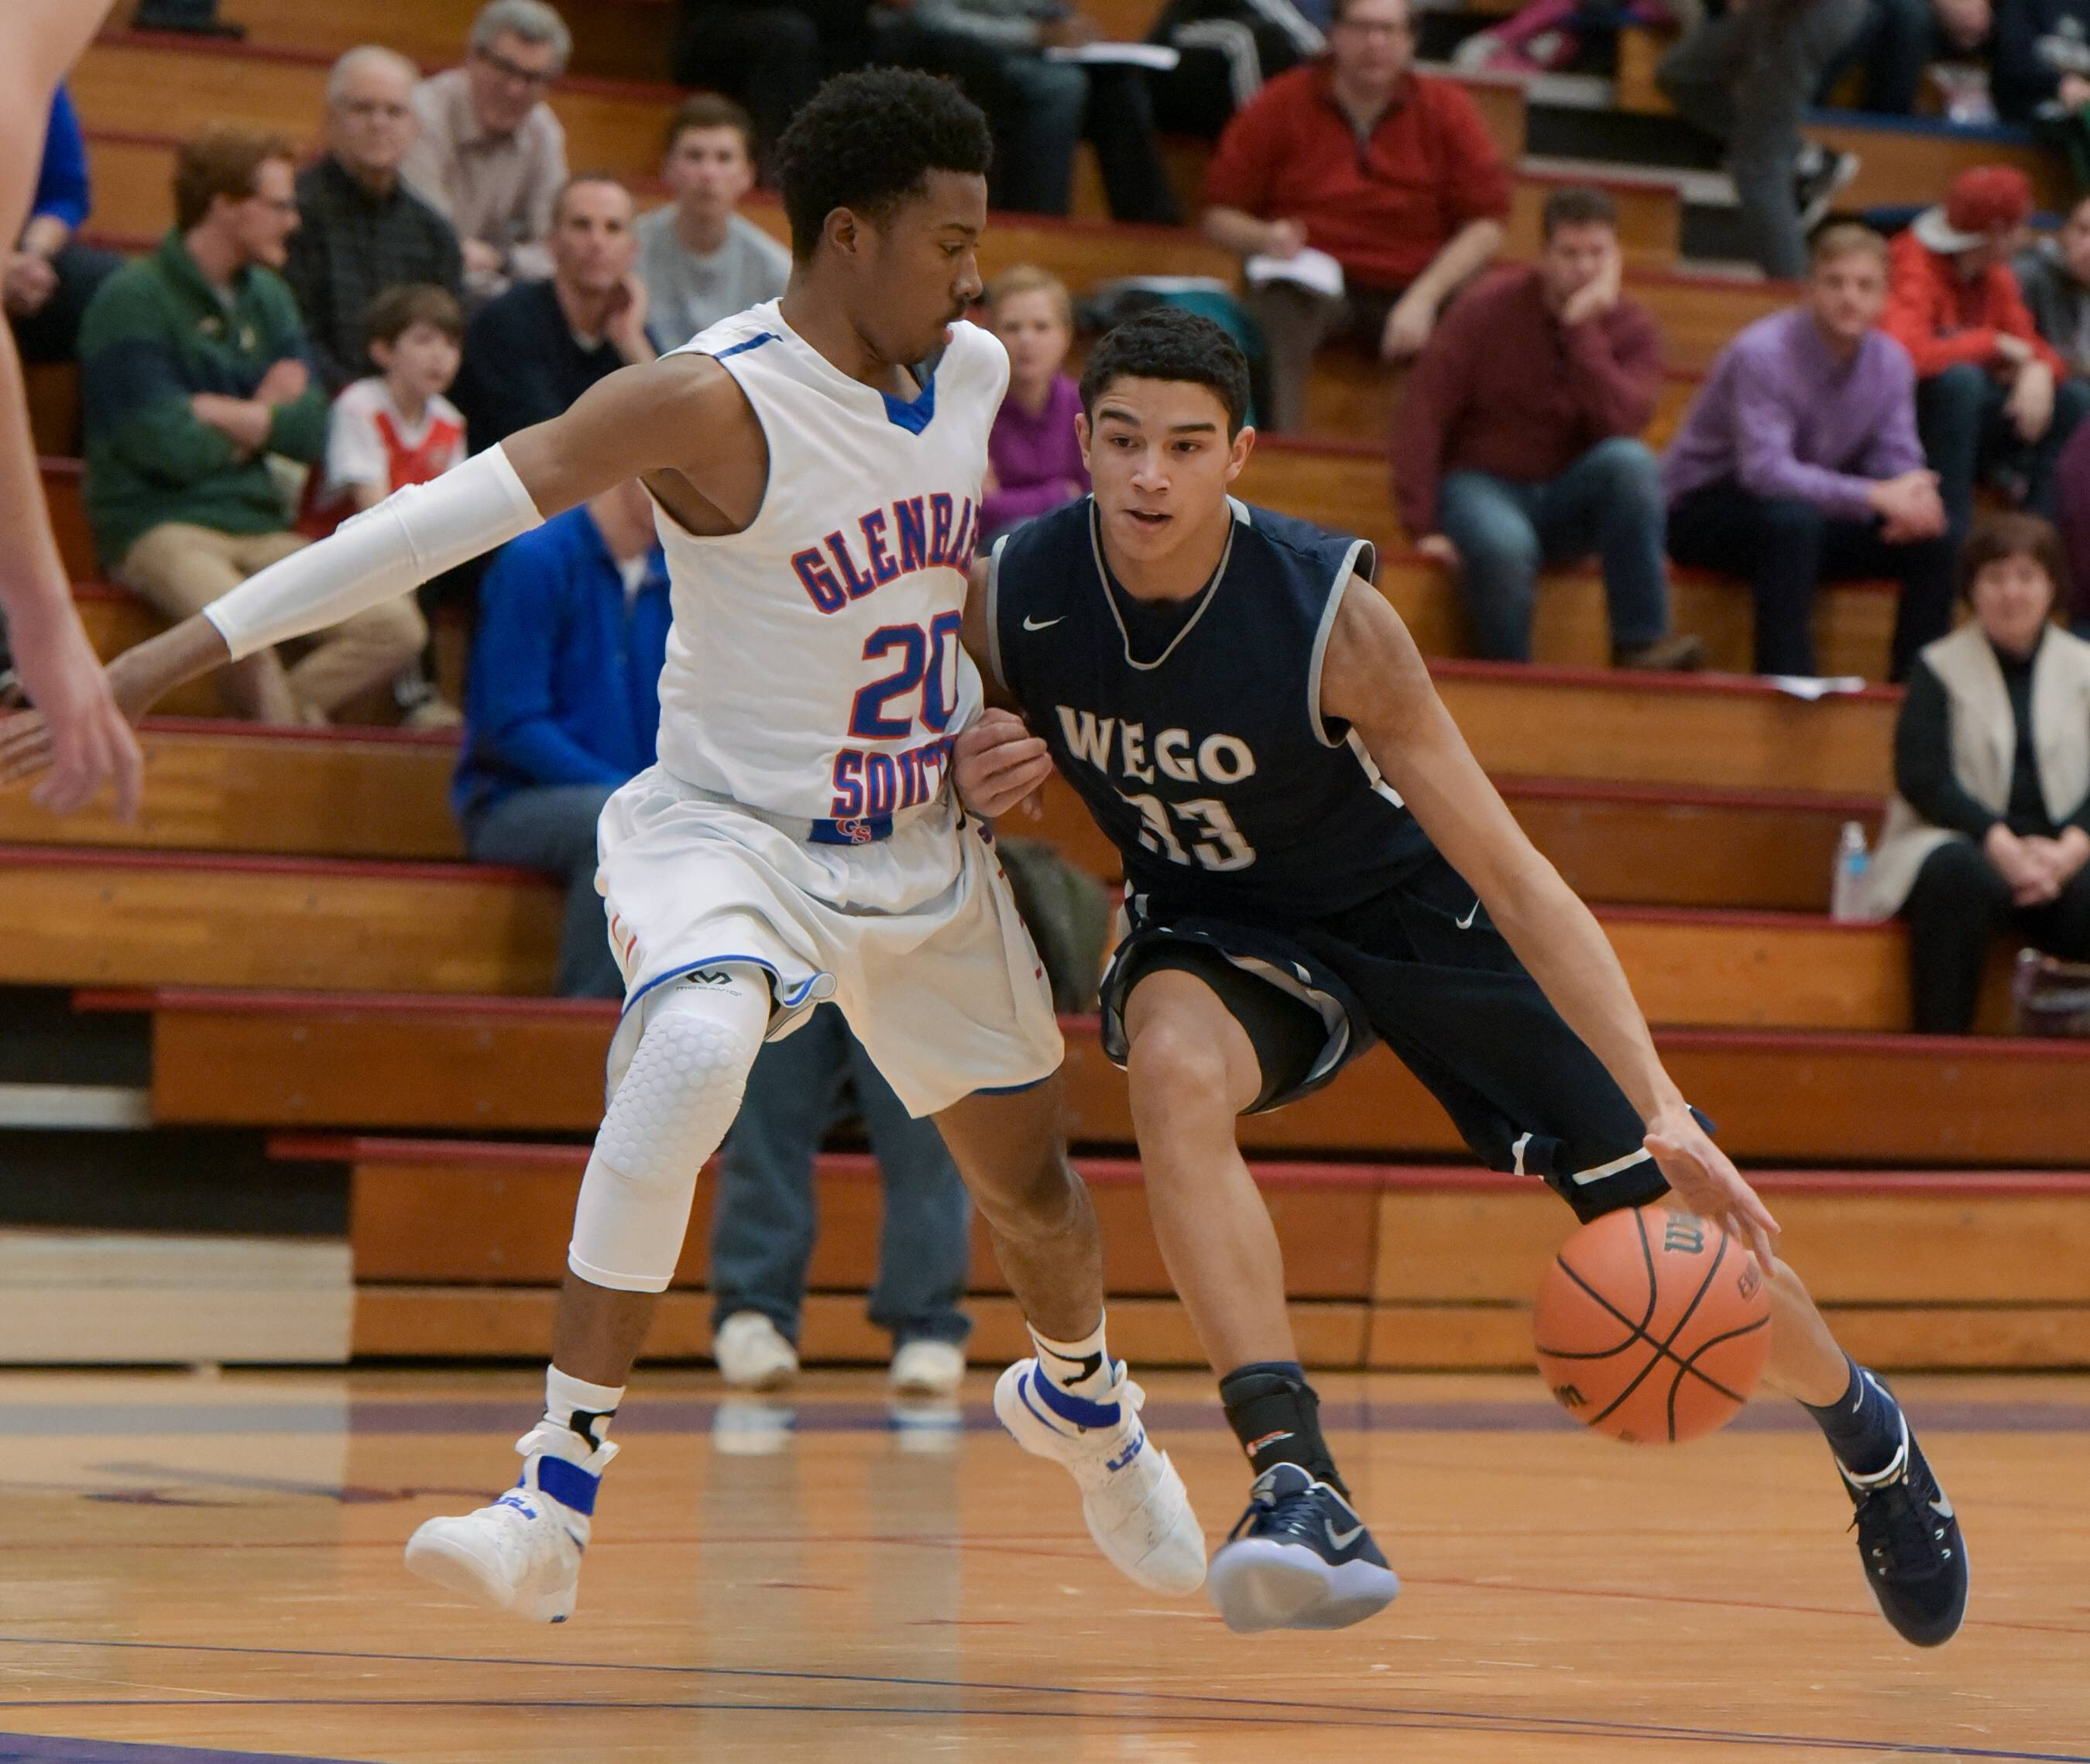 West Chicago's Tai Bibbs drives around Glenbard South's Brandon Whiteside during a game against Glenbard South.